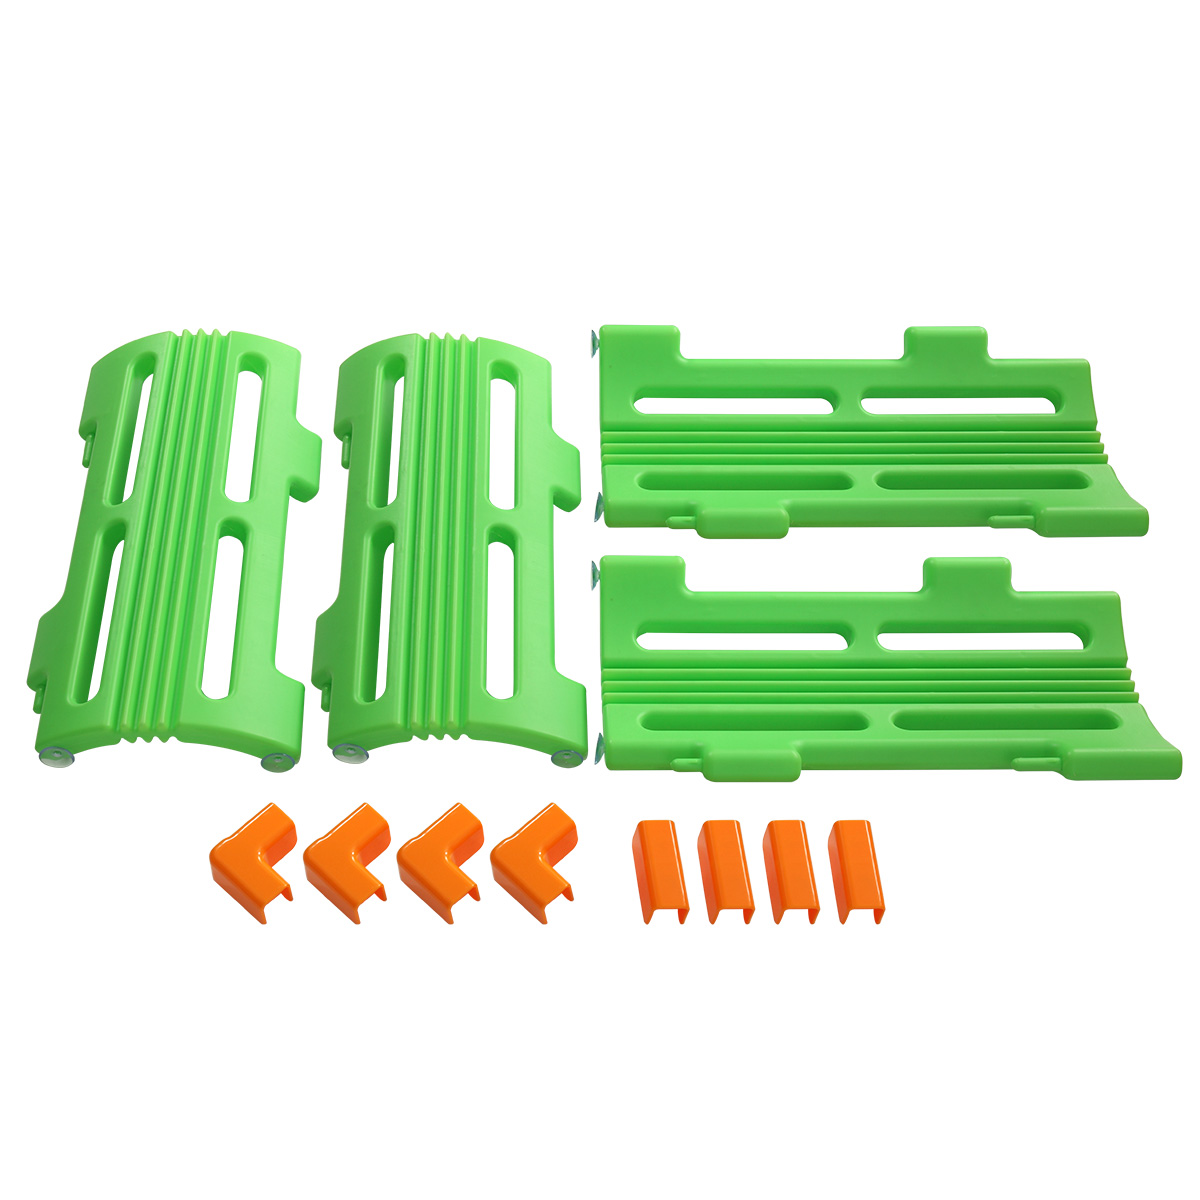 Jaxpety 4 PCS Corner Piece For Baby Playpen Kids Safety Play Center Yard Home Green